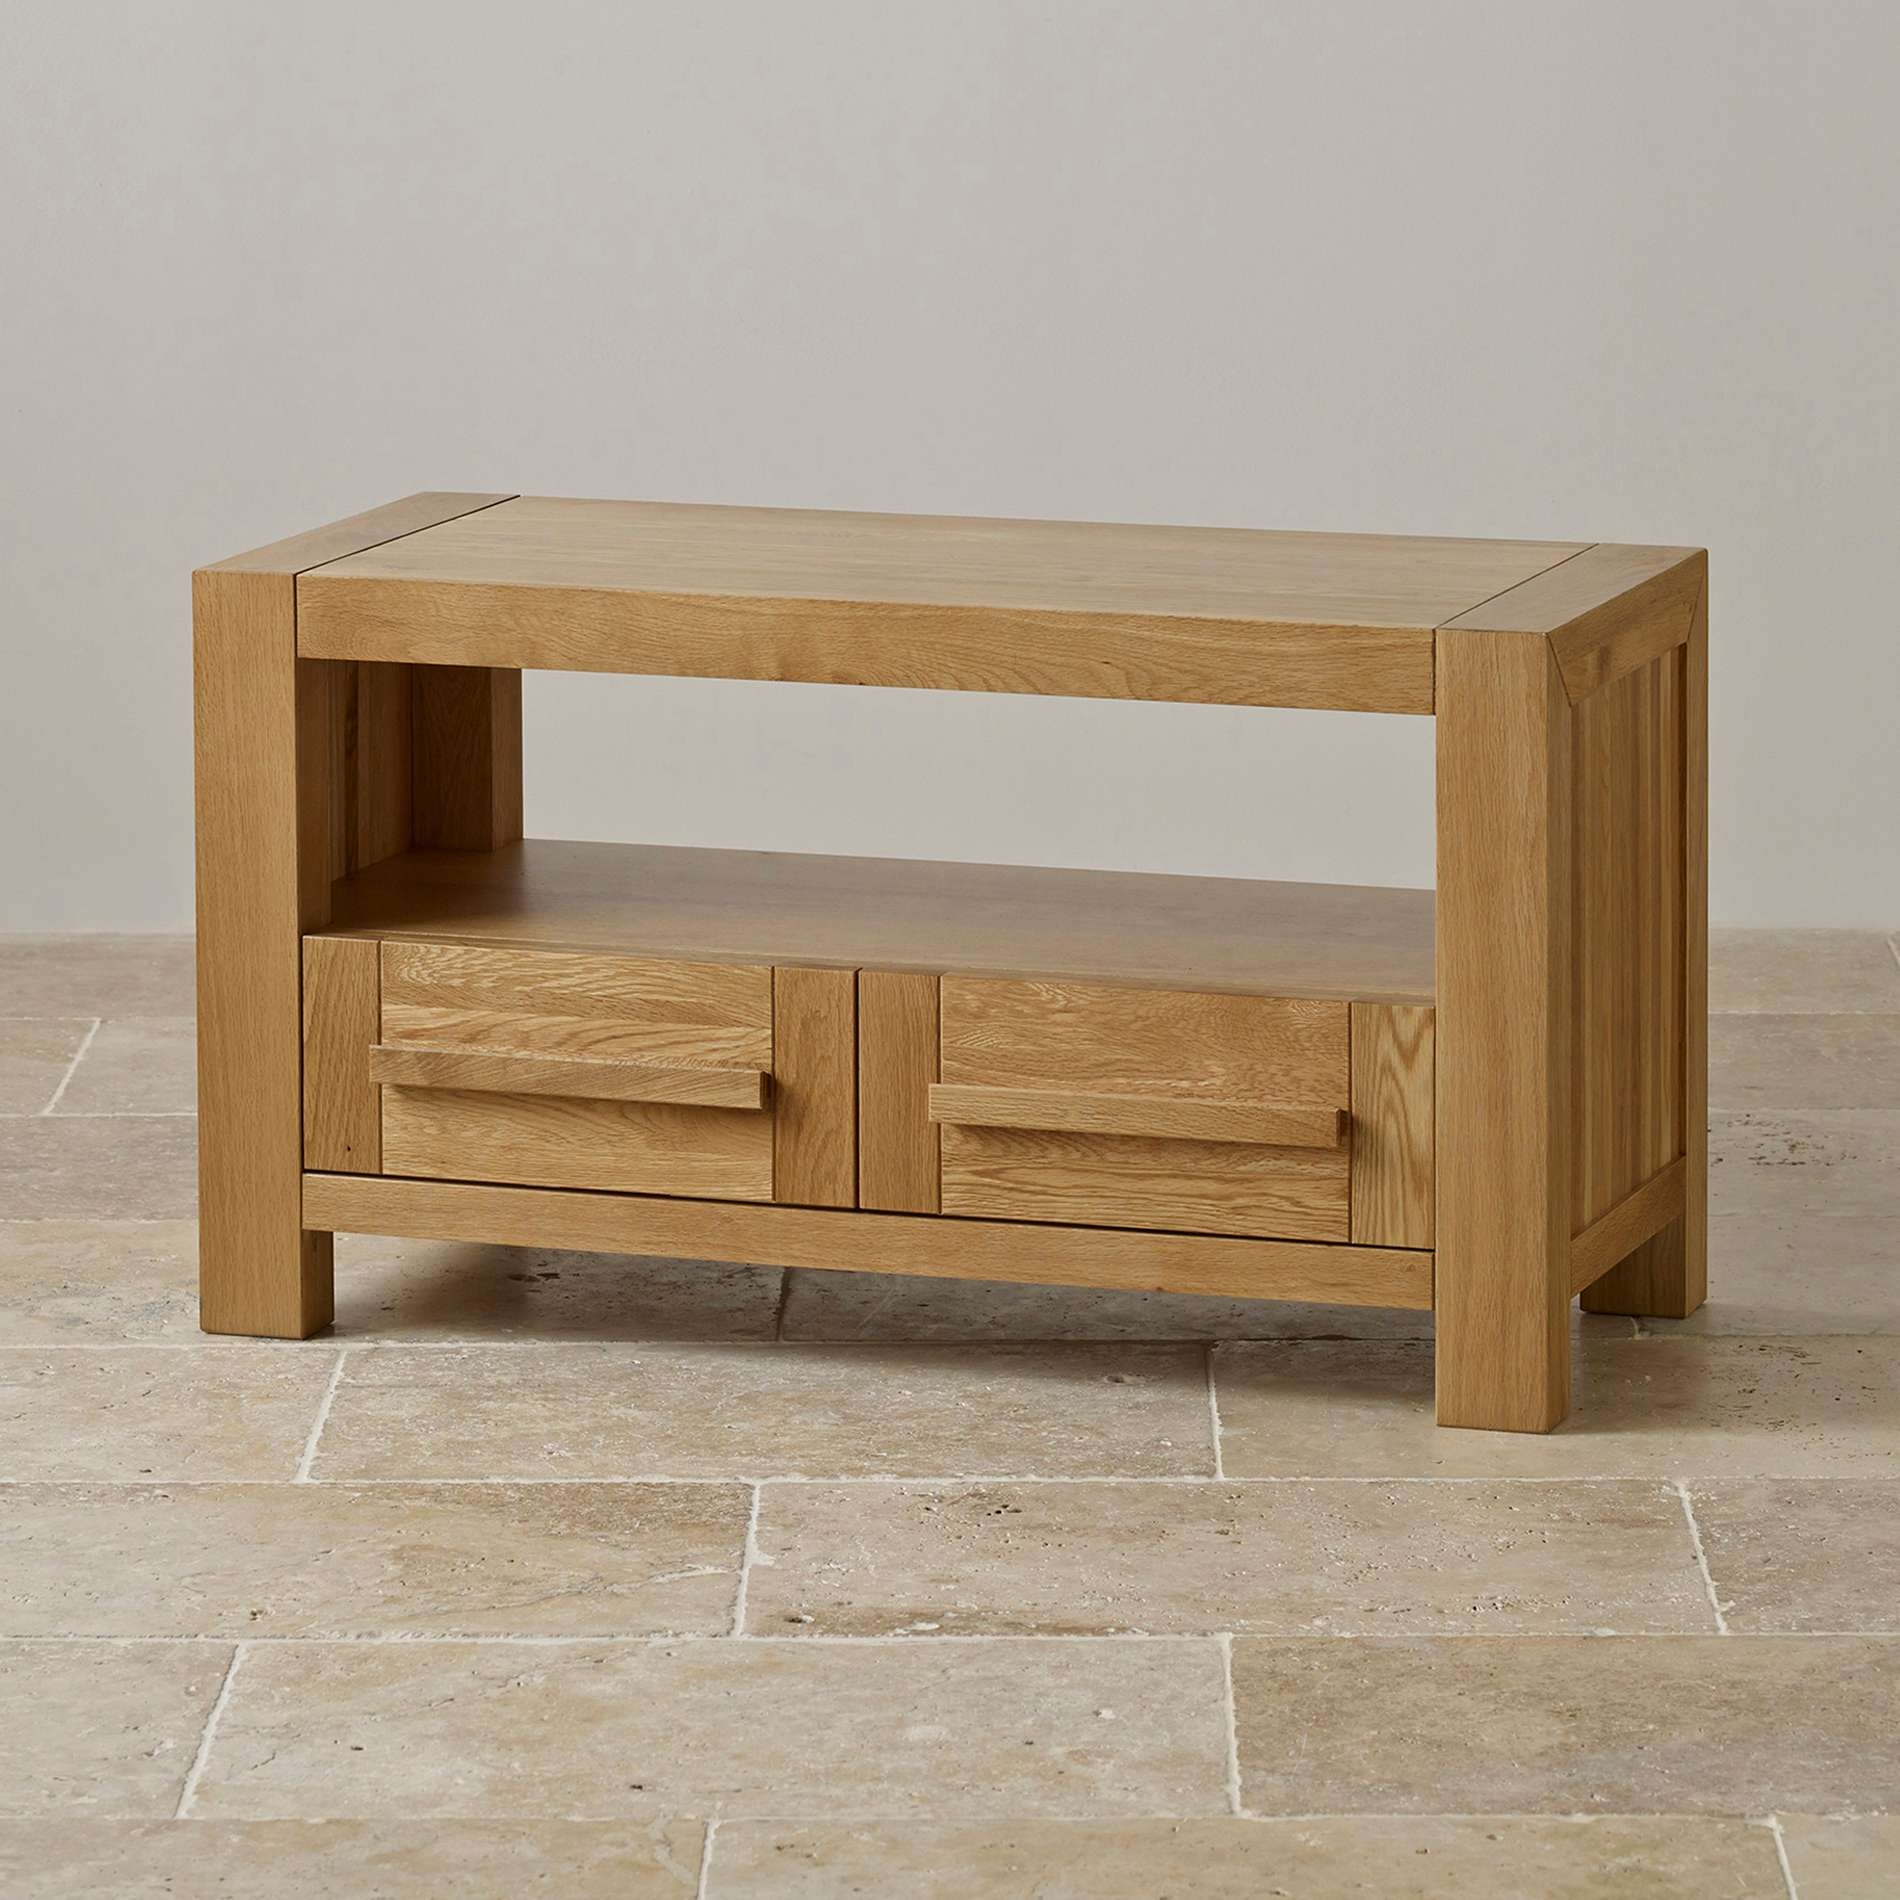 Fancy Solid Oak Tv Stand 34 For Small Home Remodel Ideas With For Oak Tv Stands Furniture (View 13 of 15)